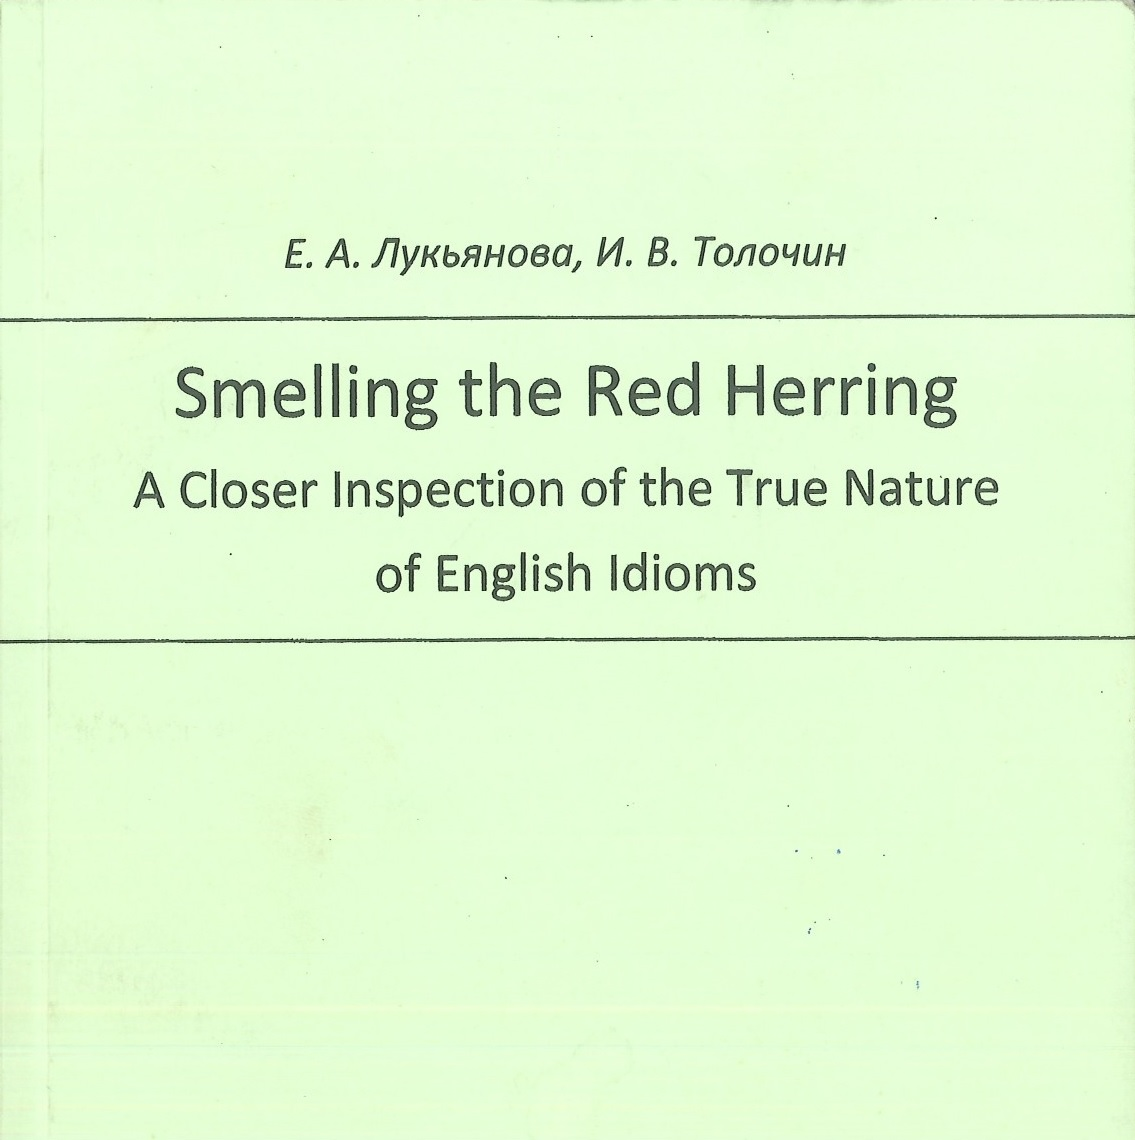 Smelling_the_red_herring